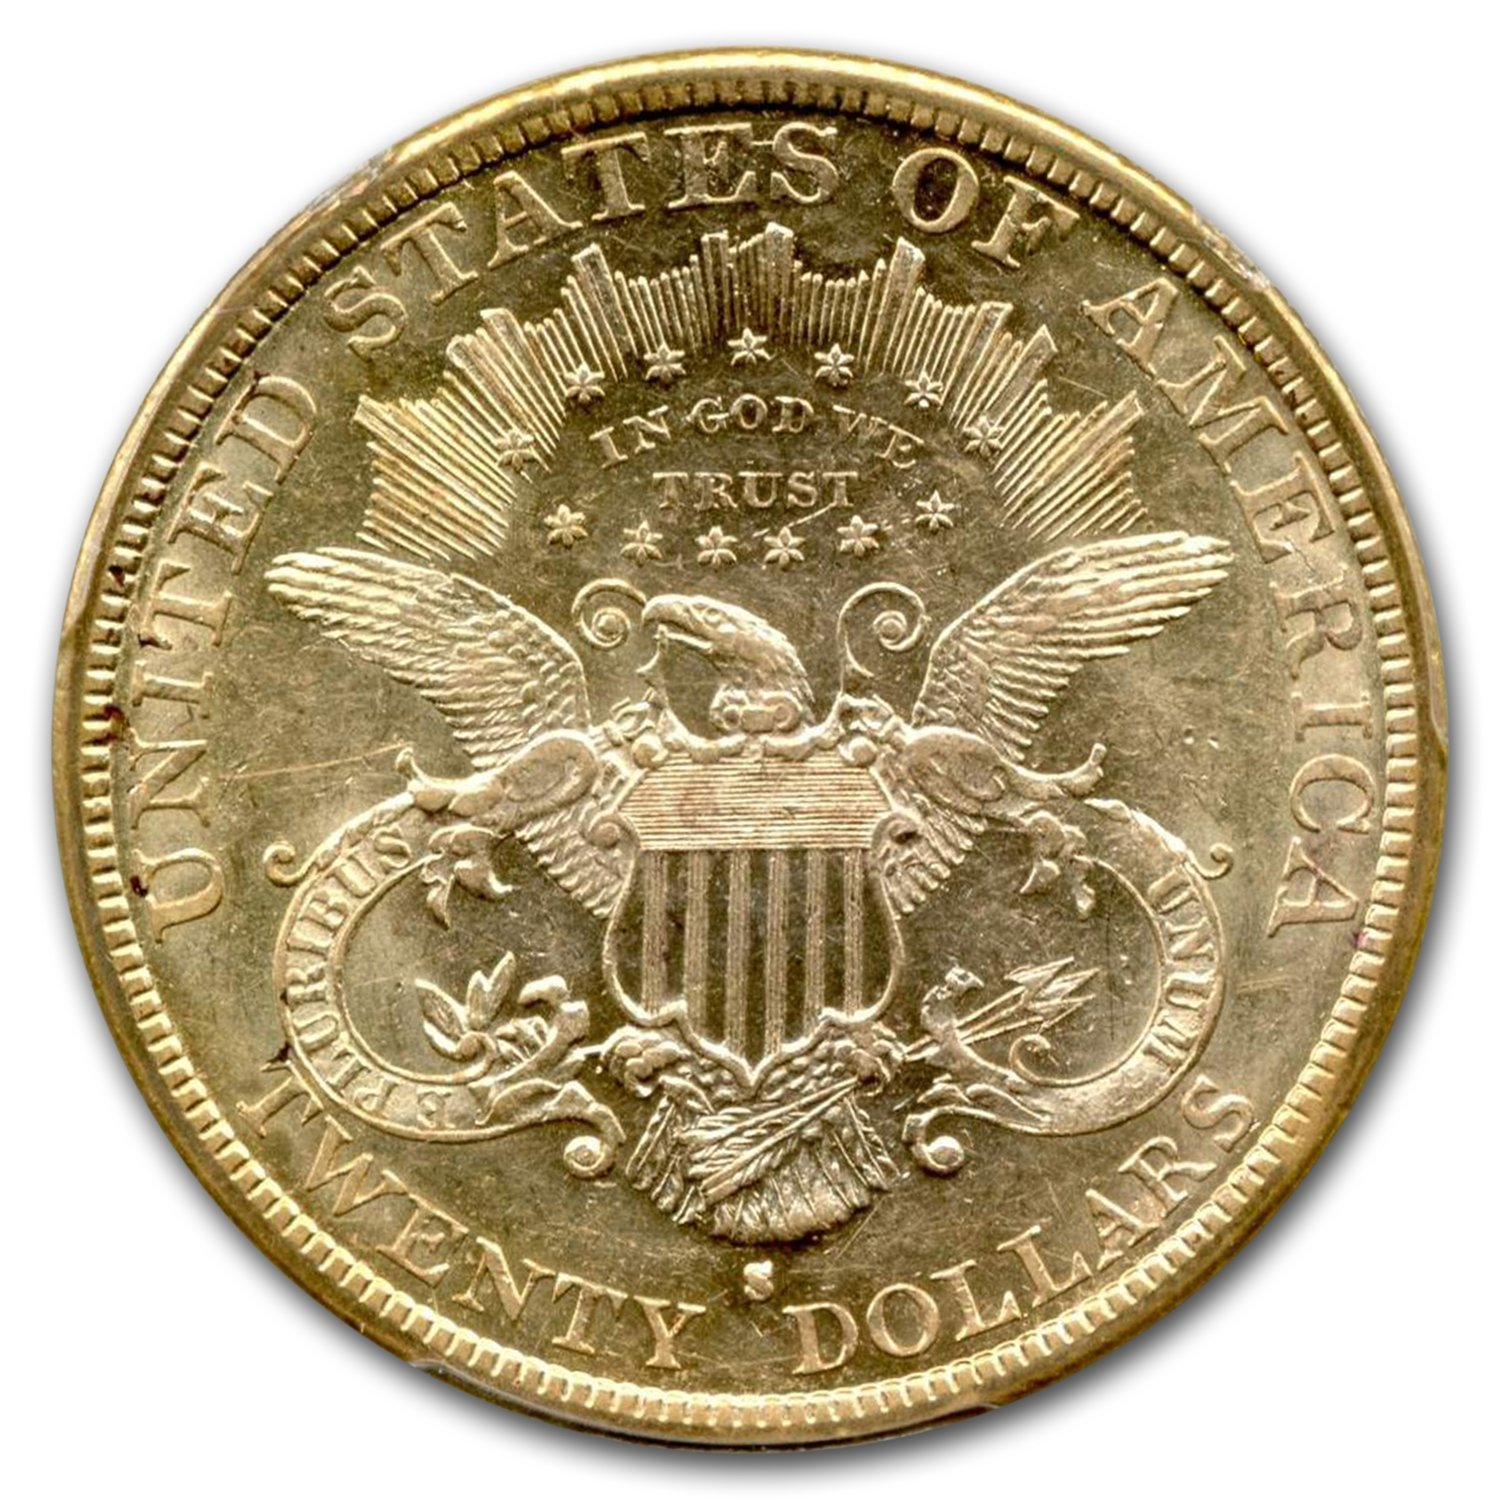 1879-S $20 Liberty Gold Double Eagle AU-55 PCGS (Saddle Ridge)